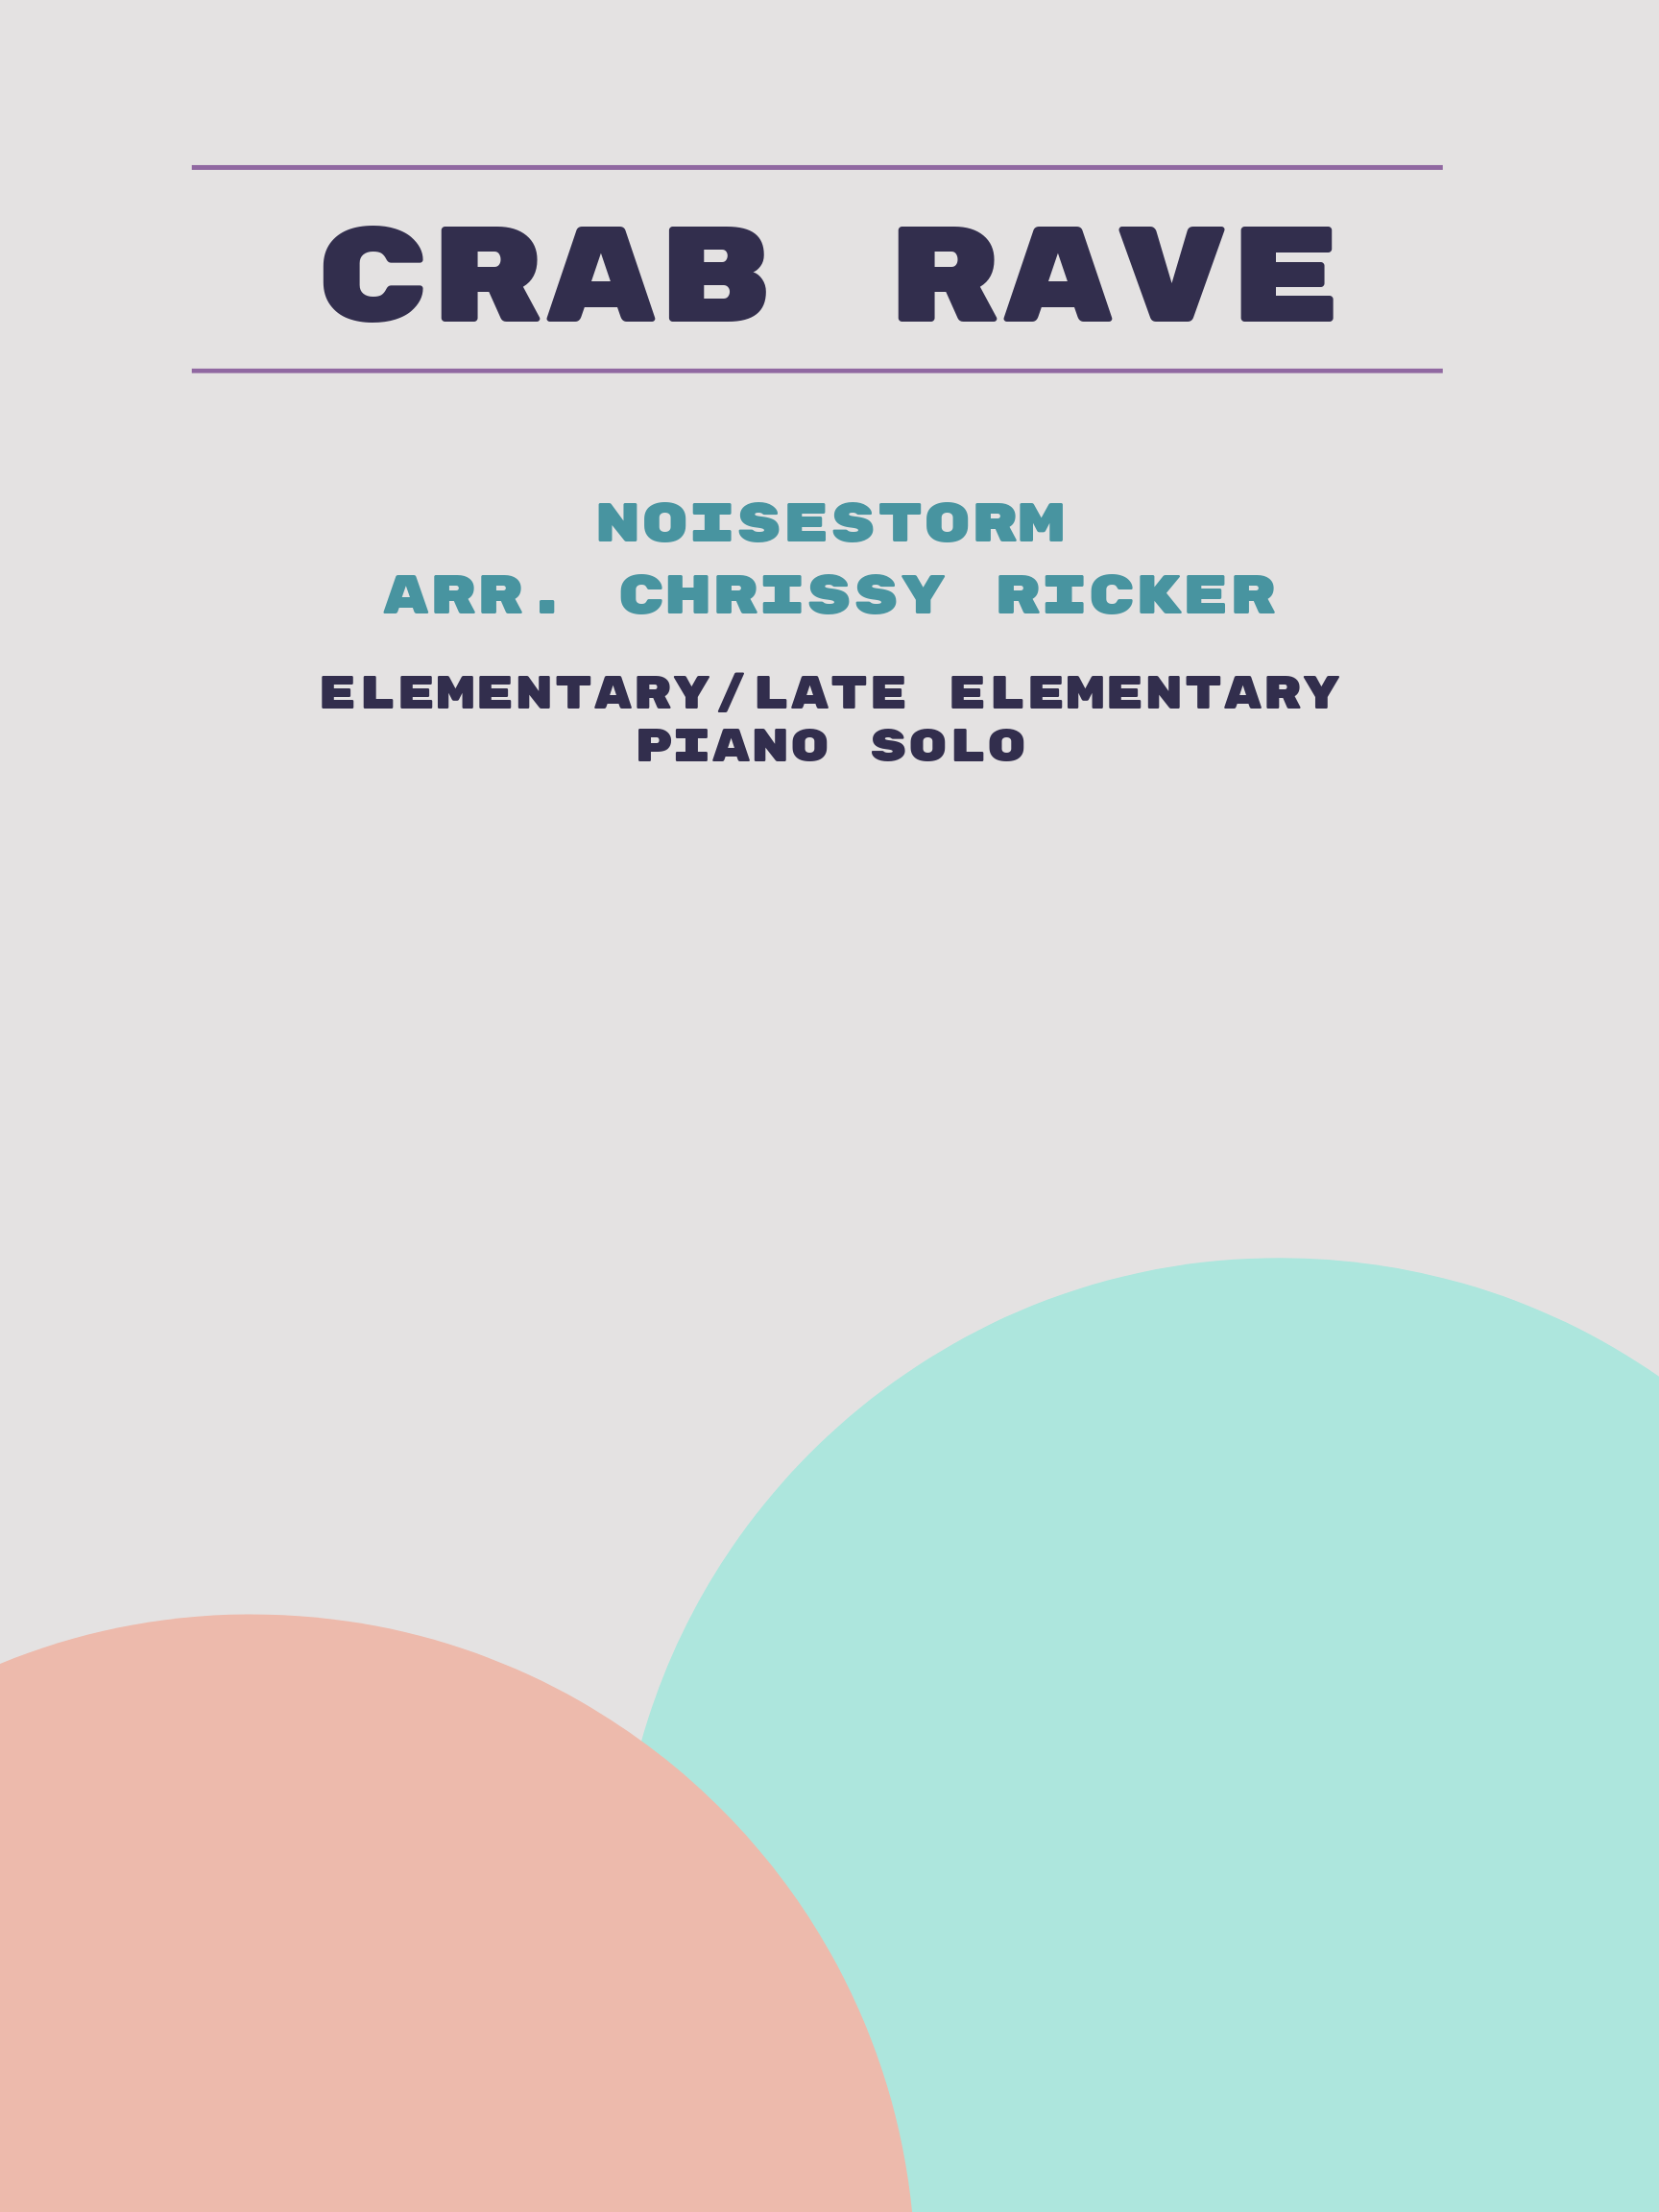 Crab Rave by Noisestorm